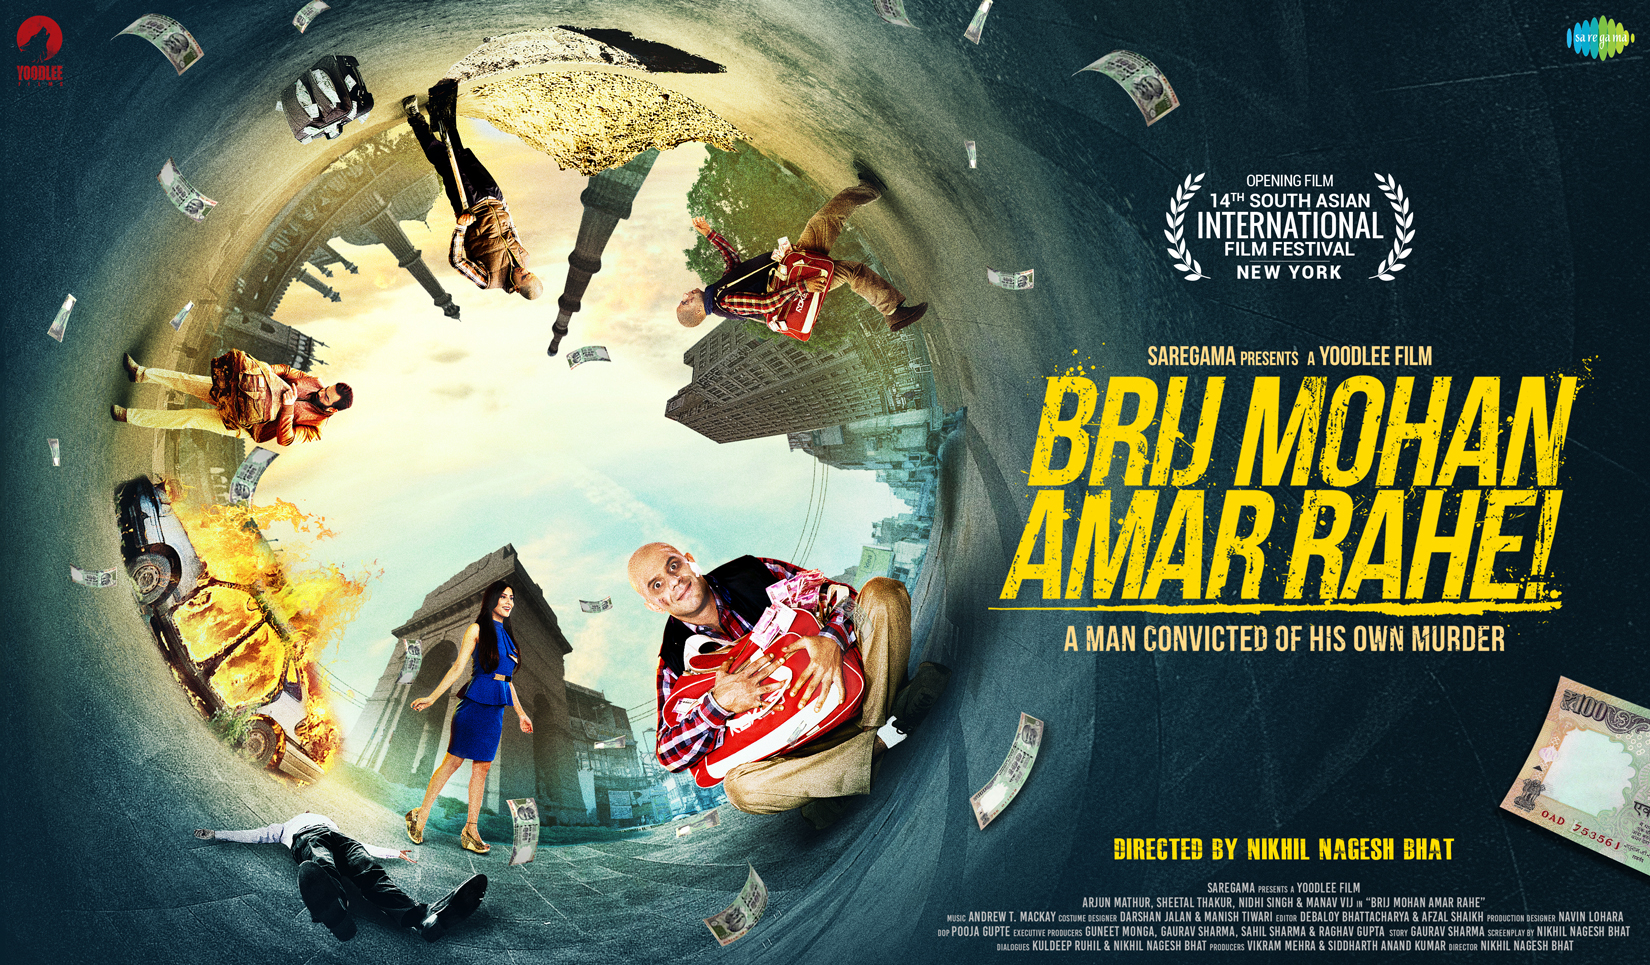 """Yoodlee Films """"Brij Mohan Amar Rahe"""" aka Long Live Brij Mohan to be screened at the opening night of The South Asian International Film Festival"""